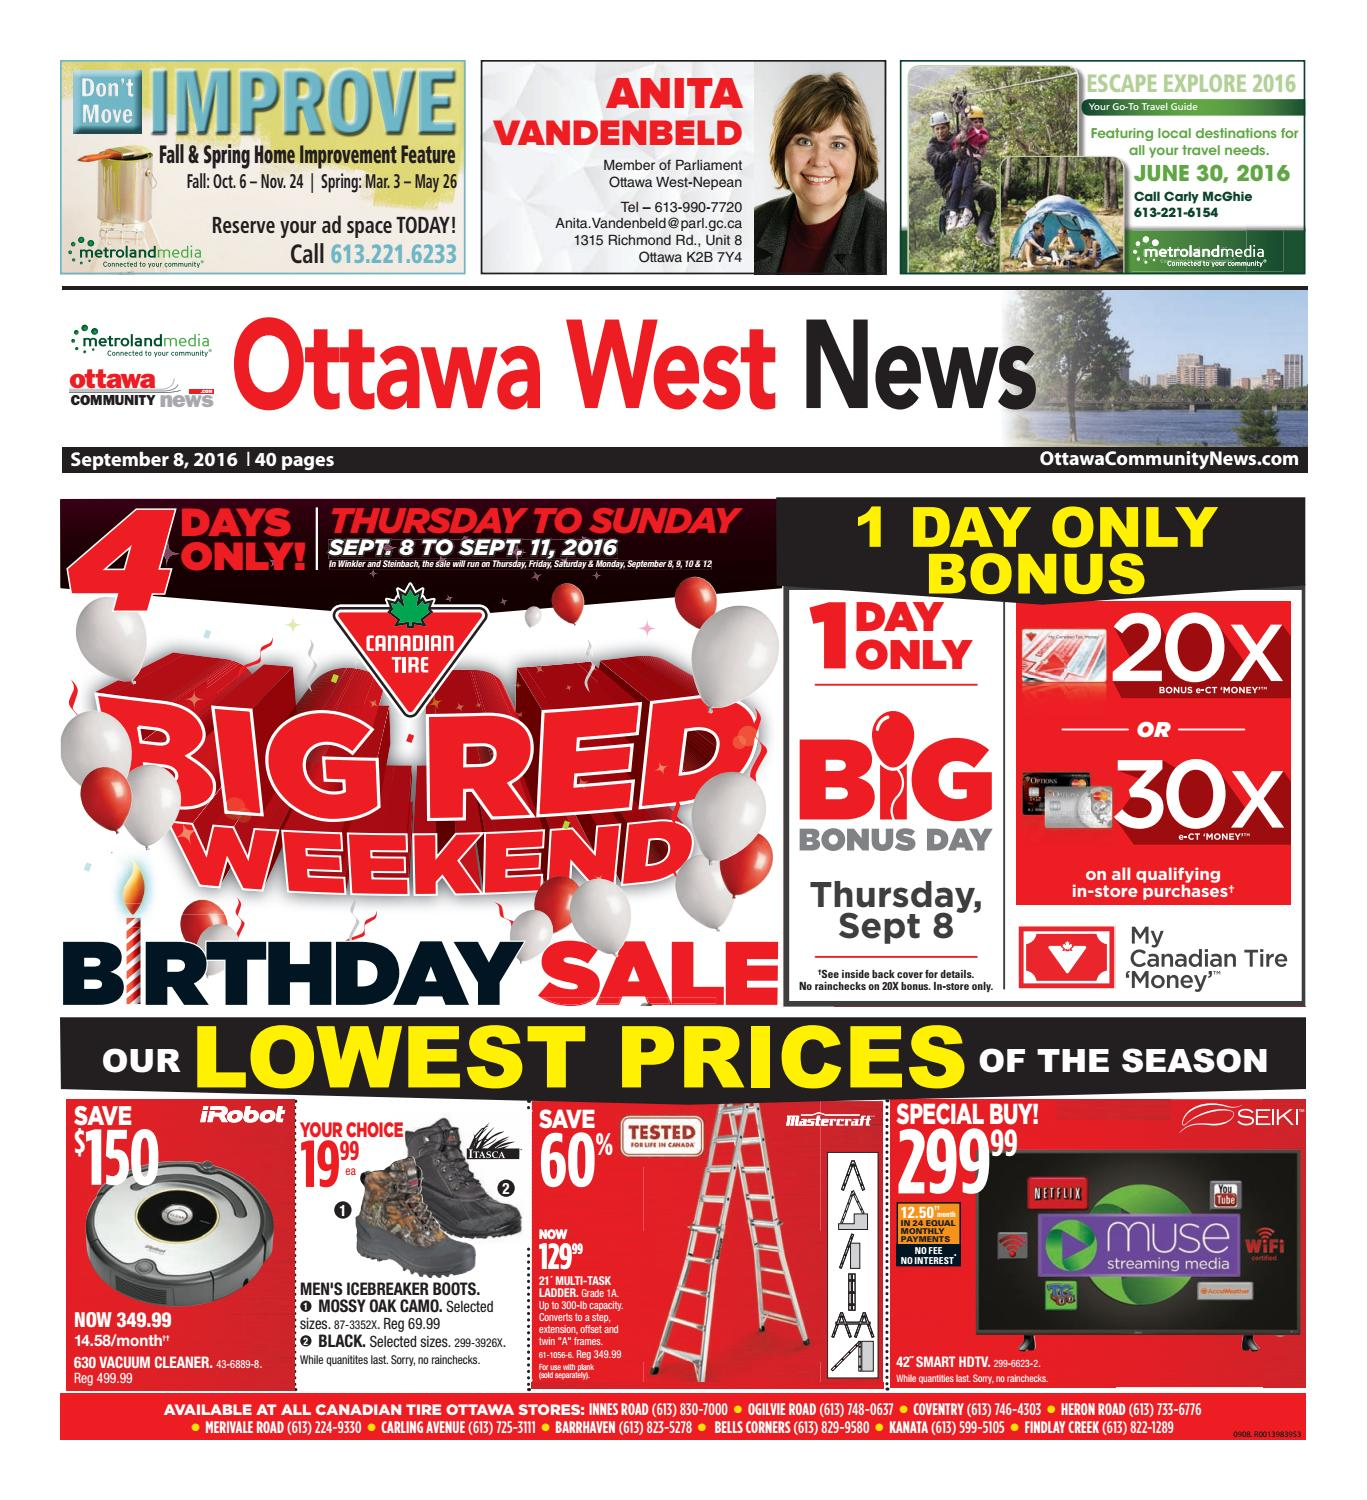 Ottawawest090816 by Metroland East - Ottawa West News - issuu